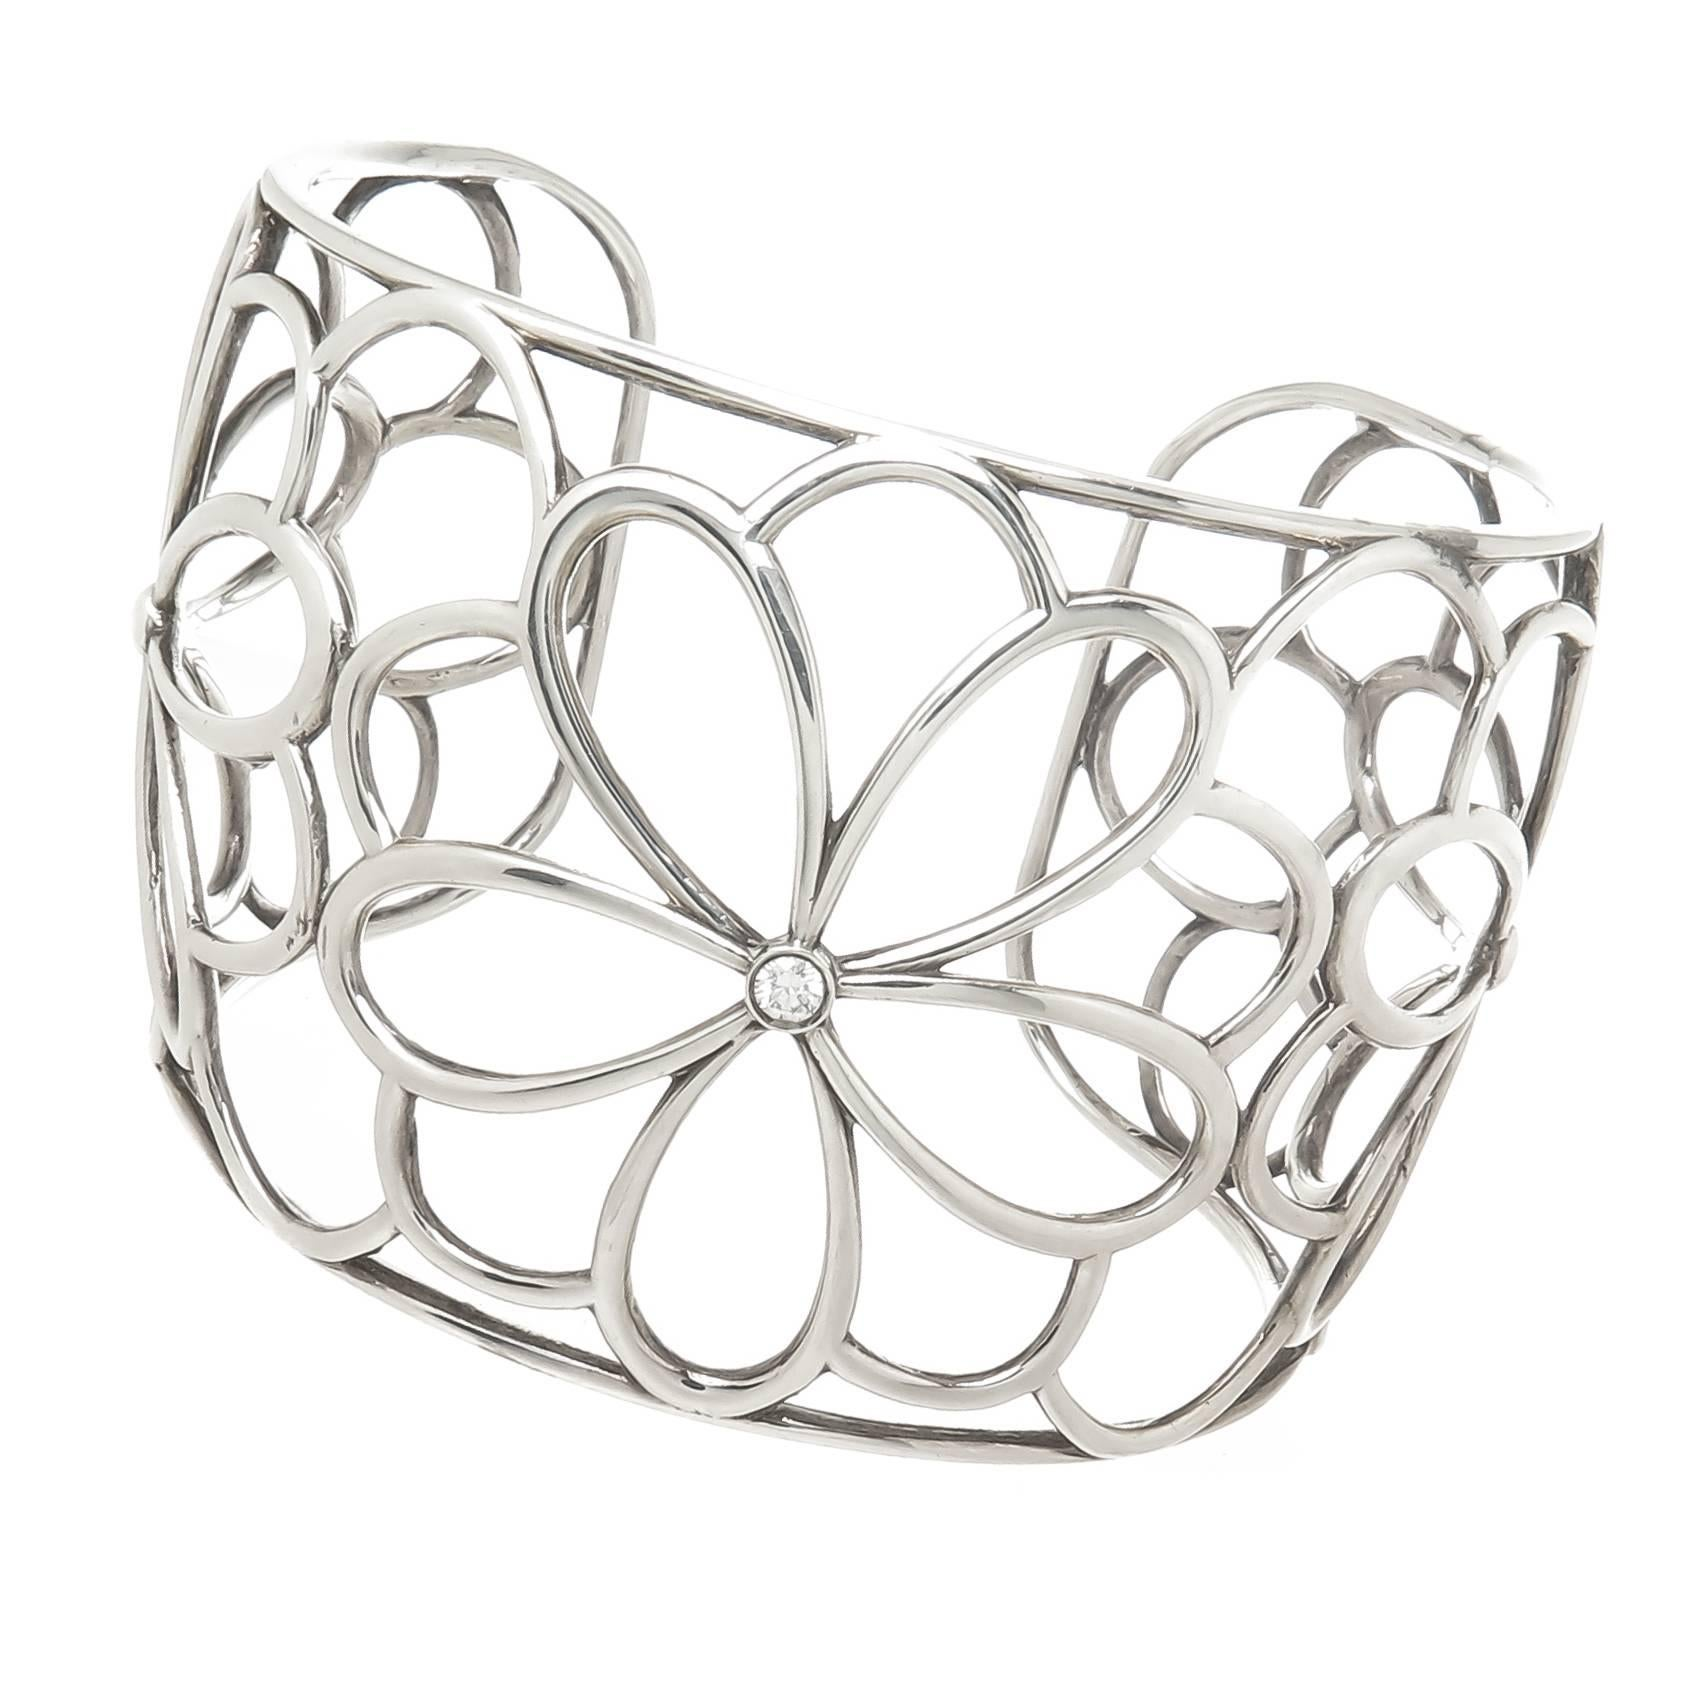 cc12c87c0 Tiffany and Co. Silver and Diamond Garden Cuff Bracelet at 1stdibs